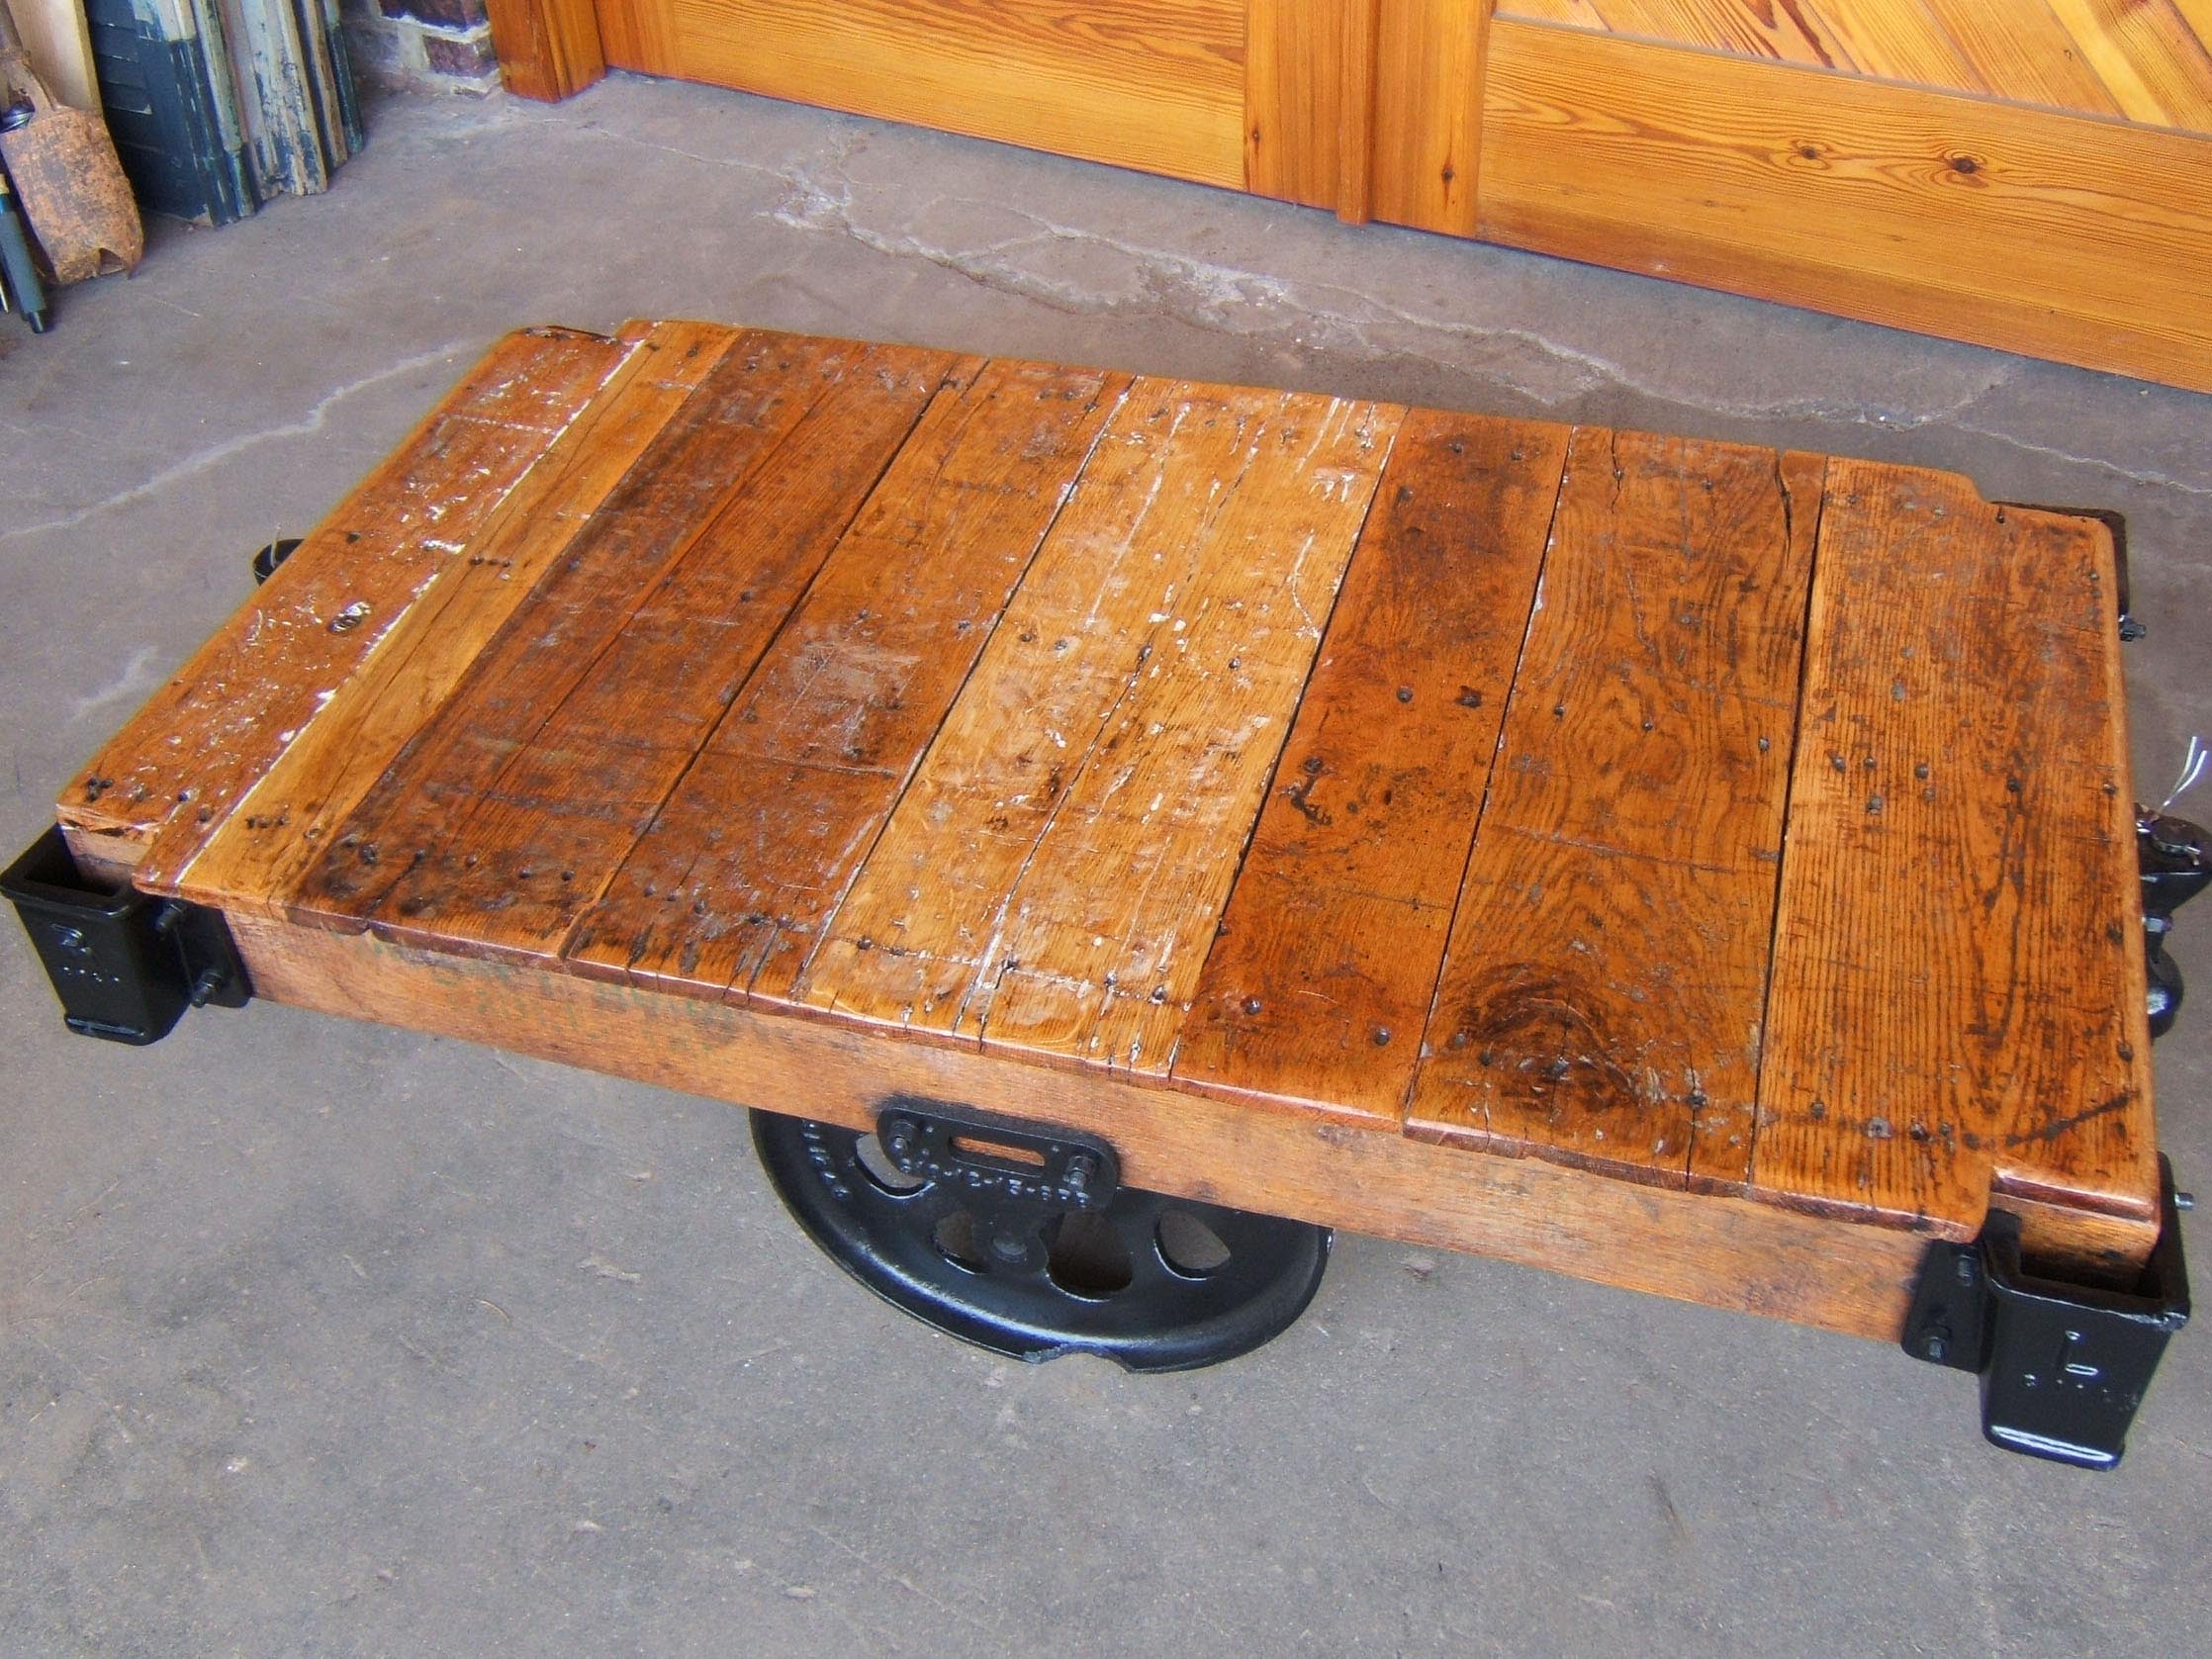 Antique Wheels for Coffee Table